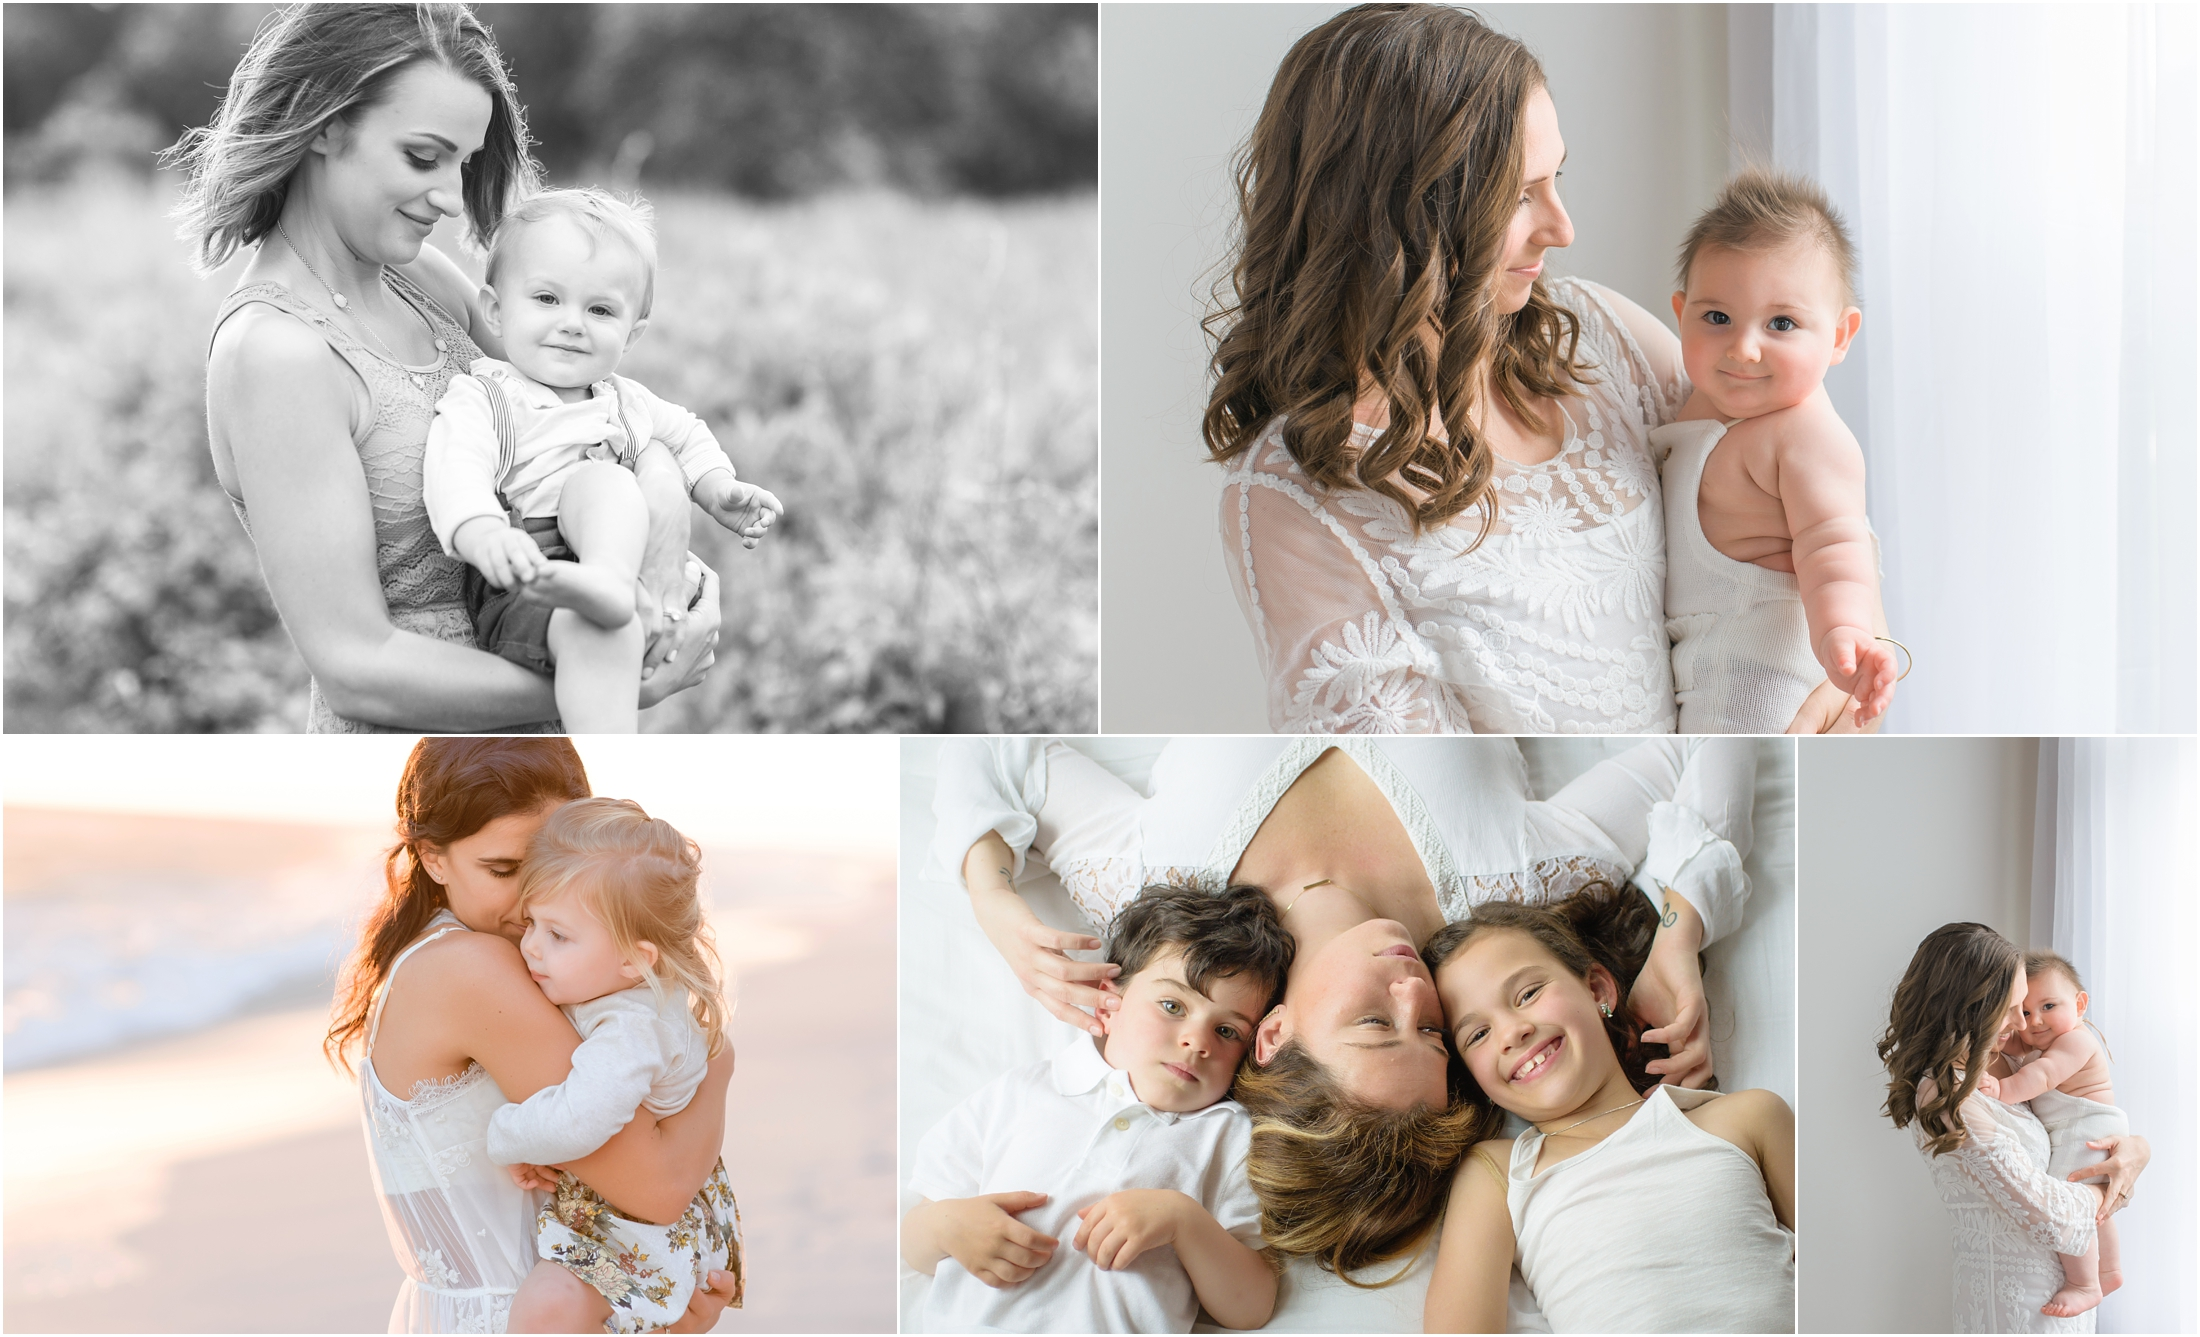 Mother's Day photo sessions in West Hartford, Simsbury, Canton, Avon and Farmington Valley CT